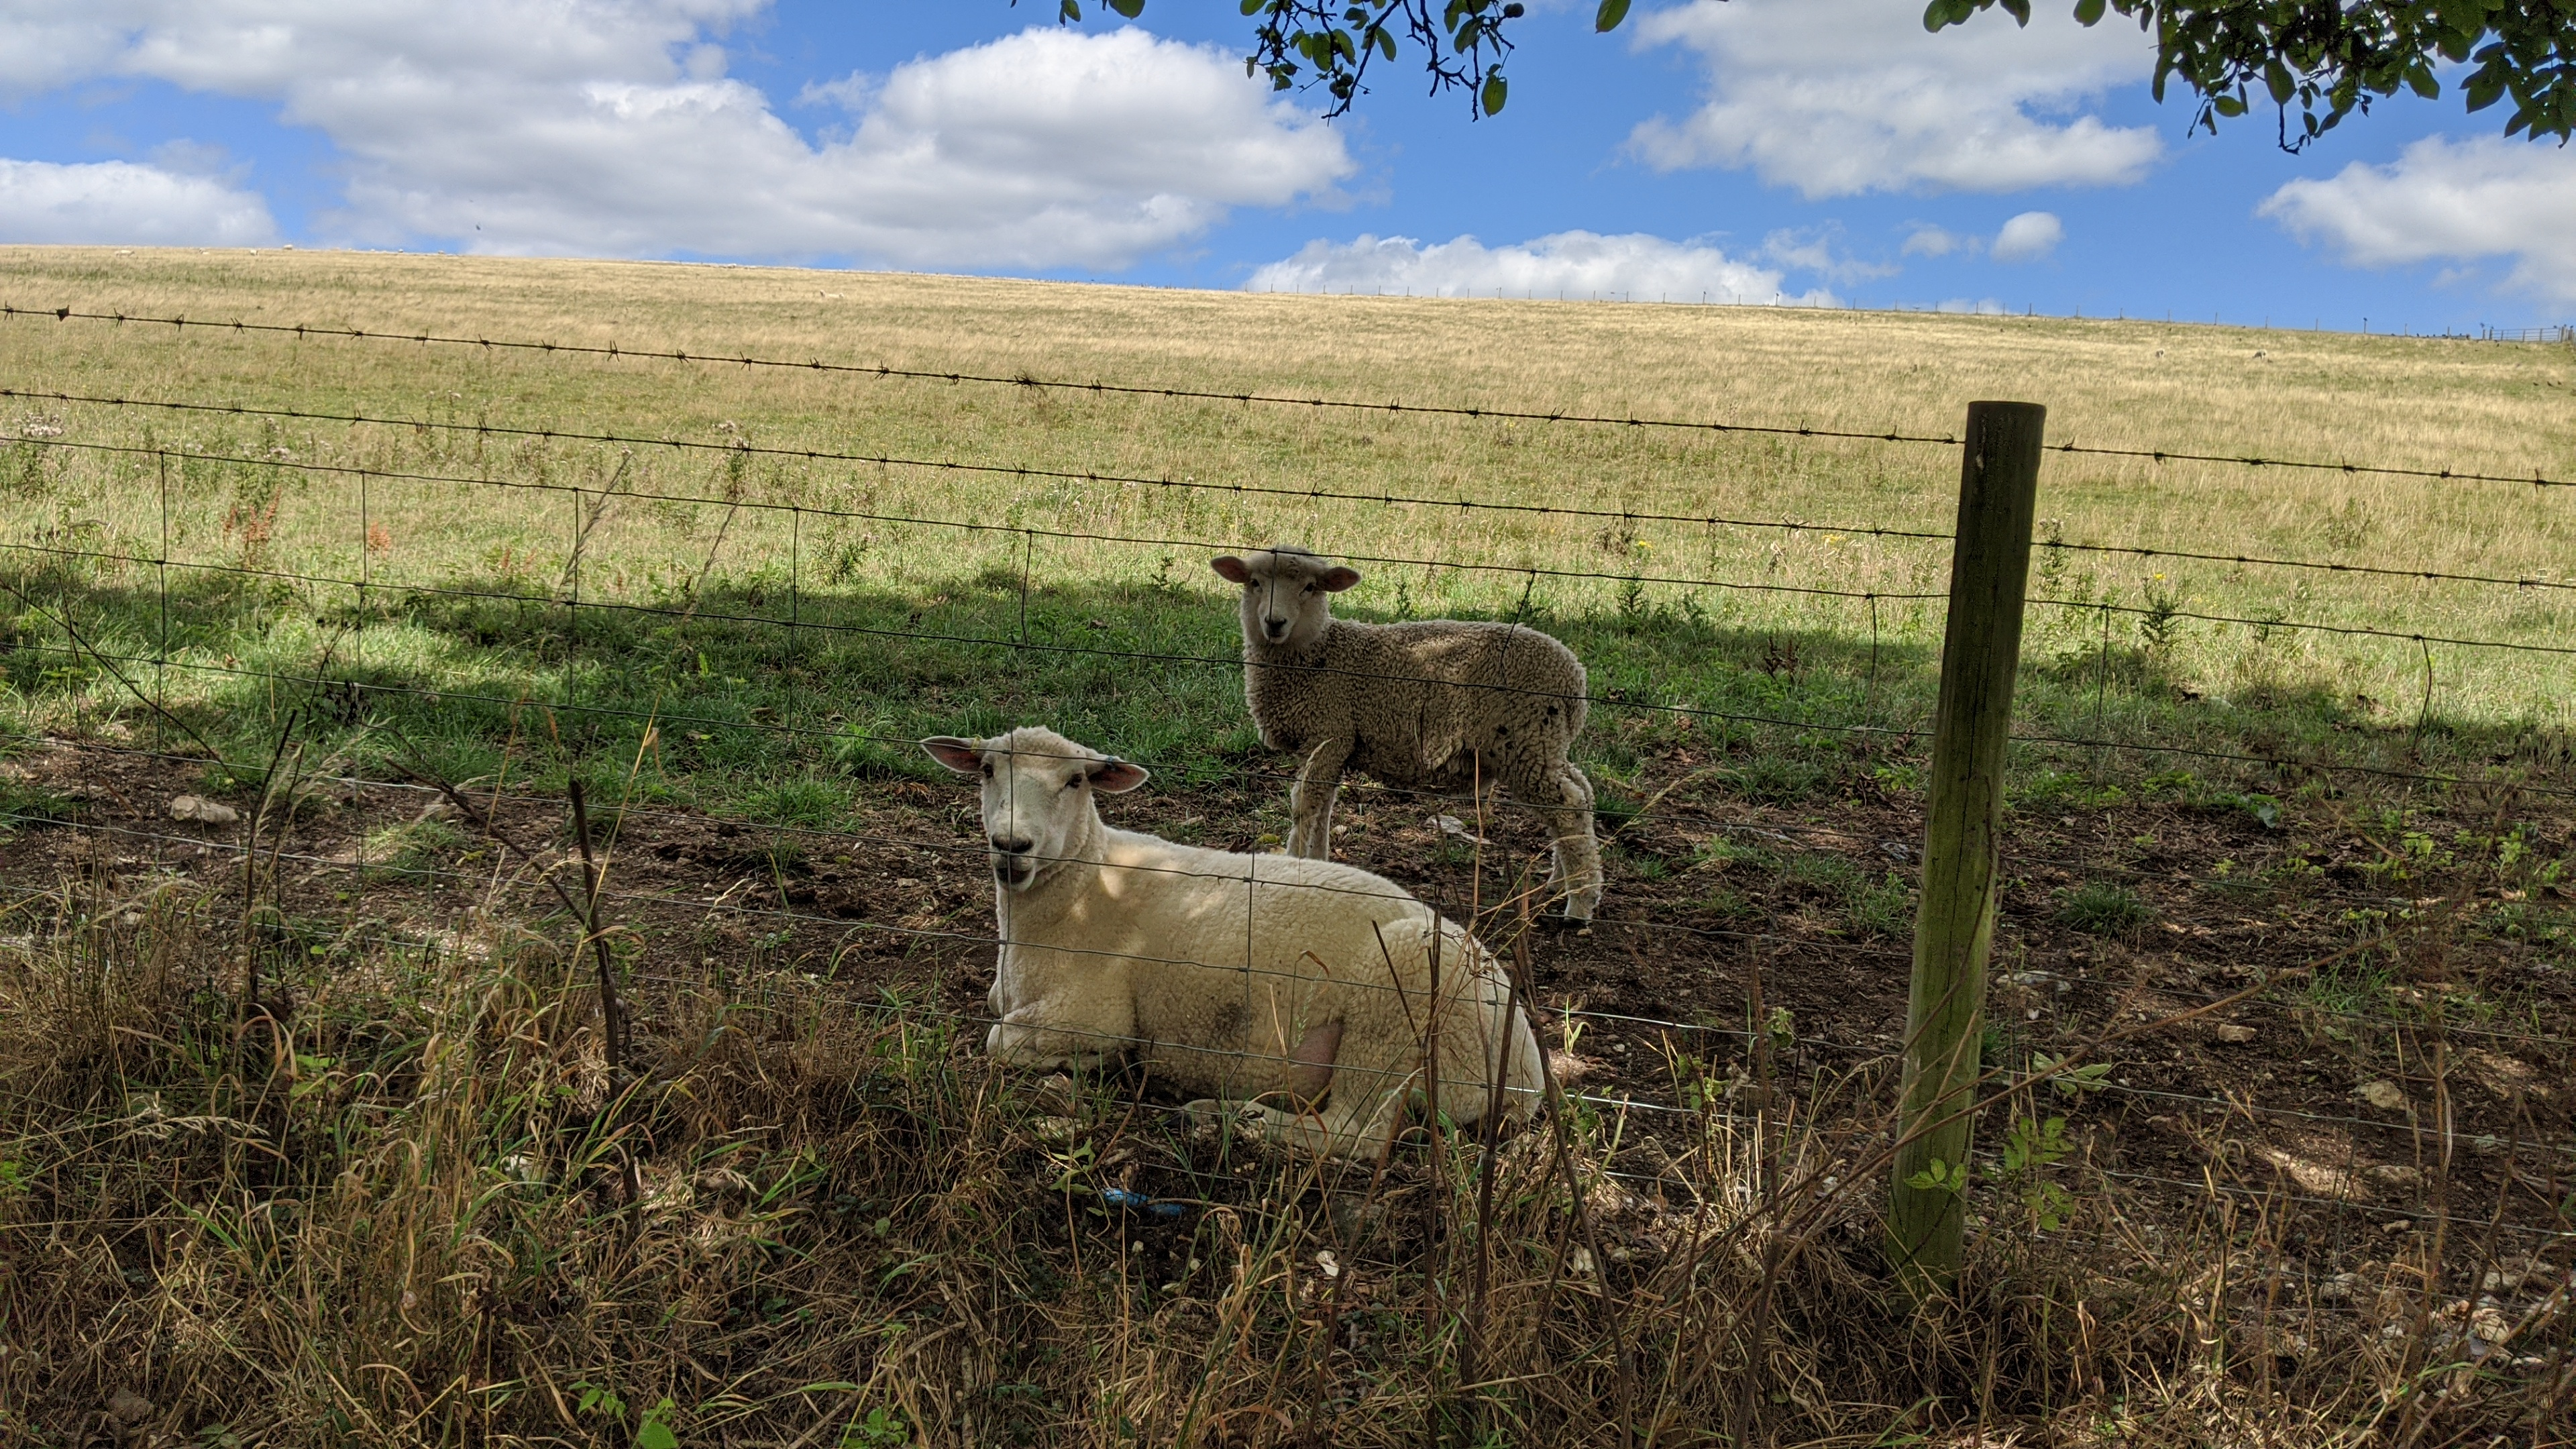 Two sheep laying under a tree behind some wire fence.